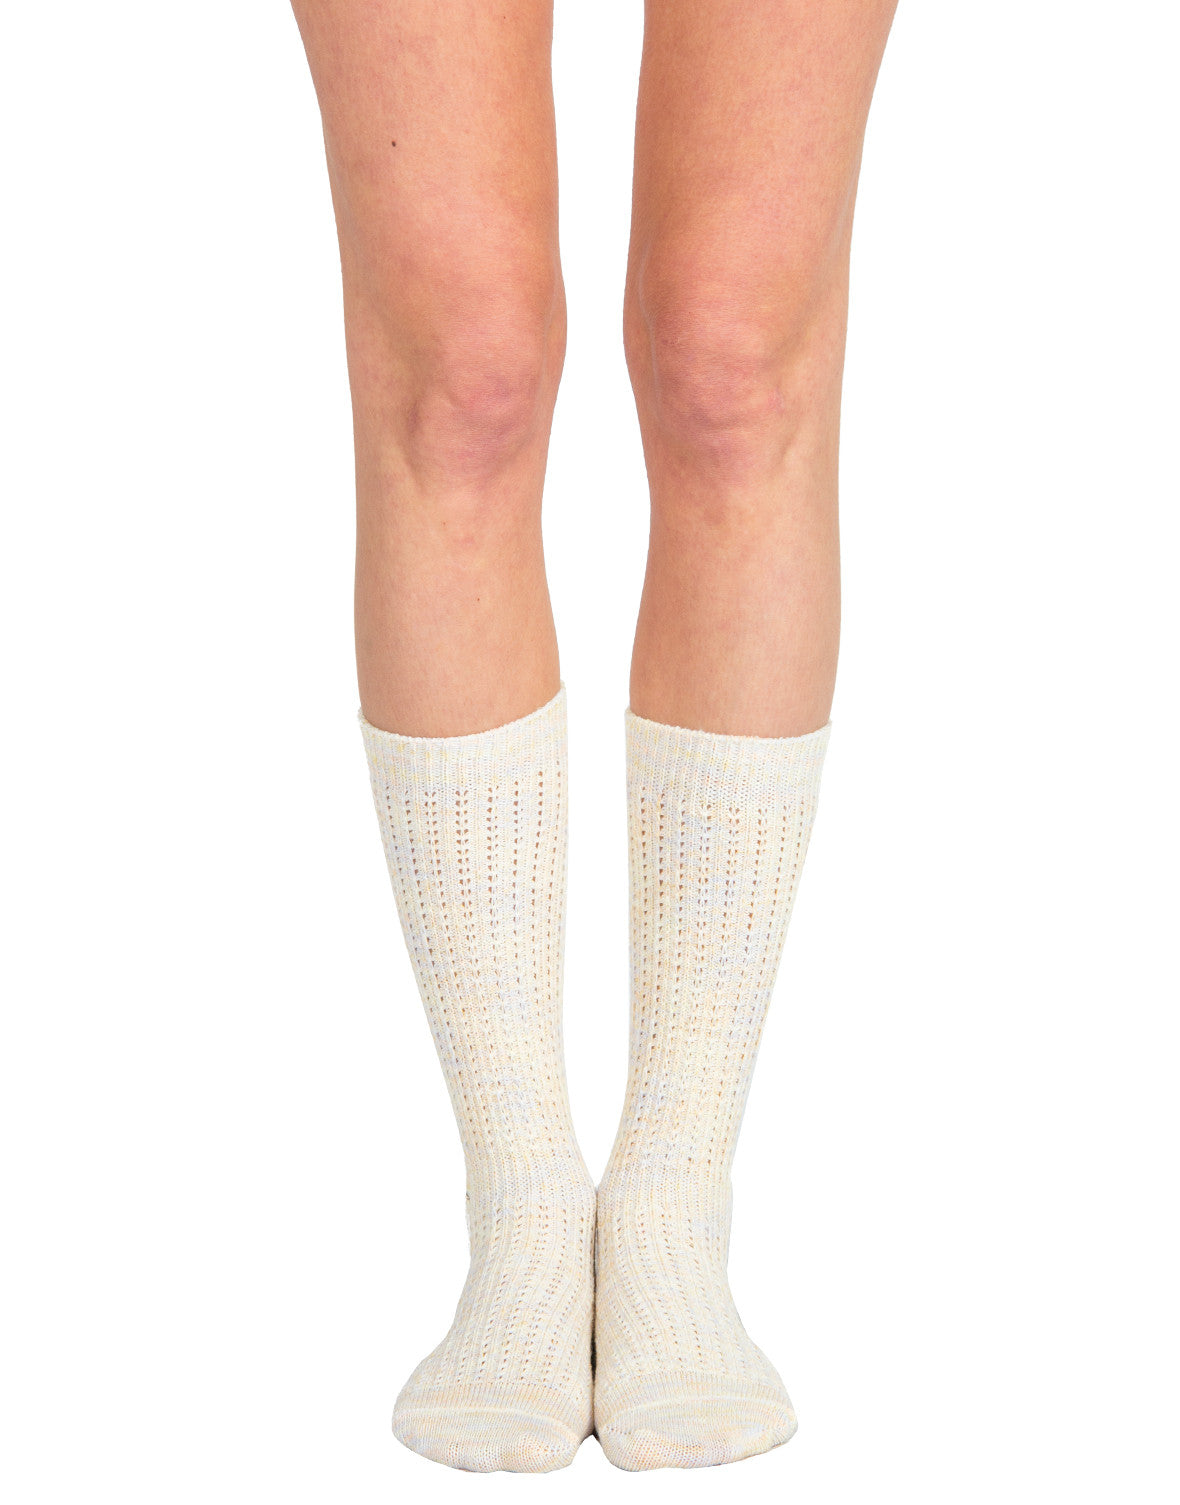 Sherbet Knee High Socks - Peach